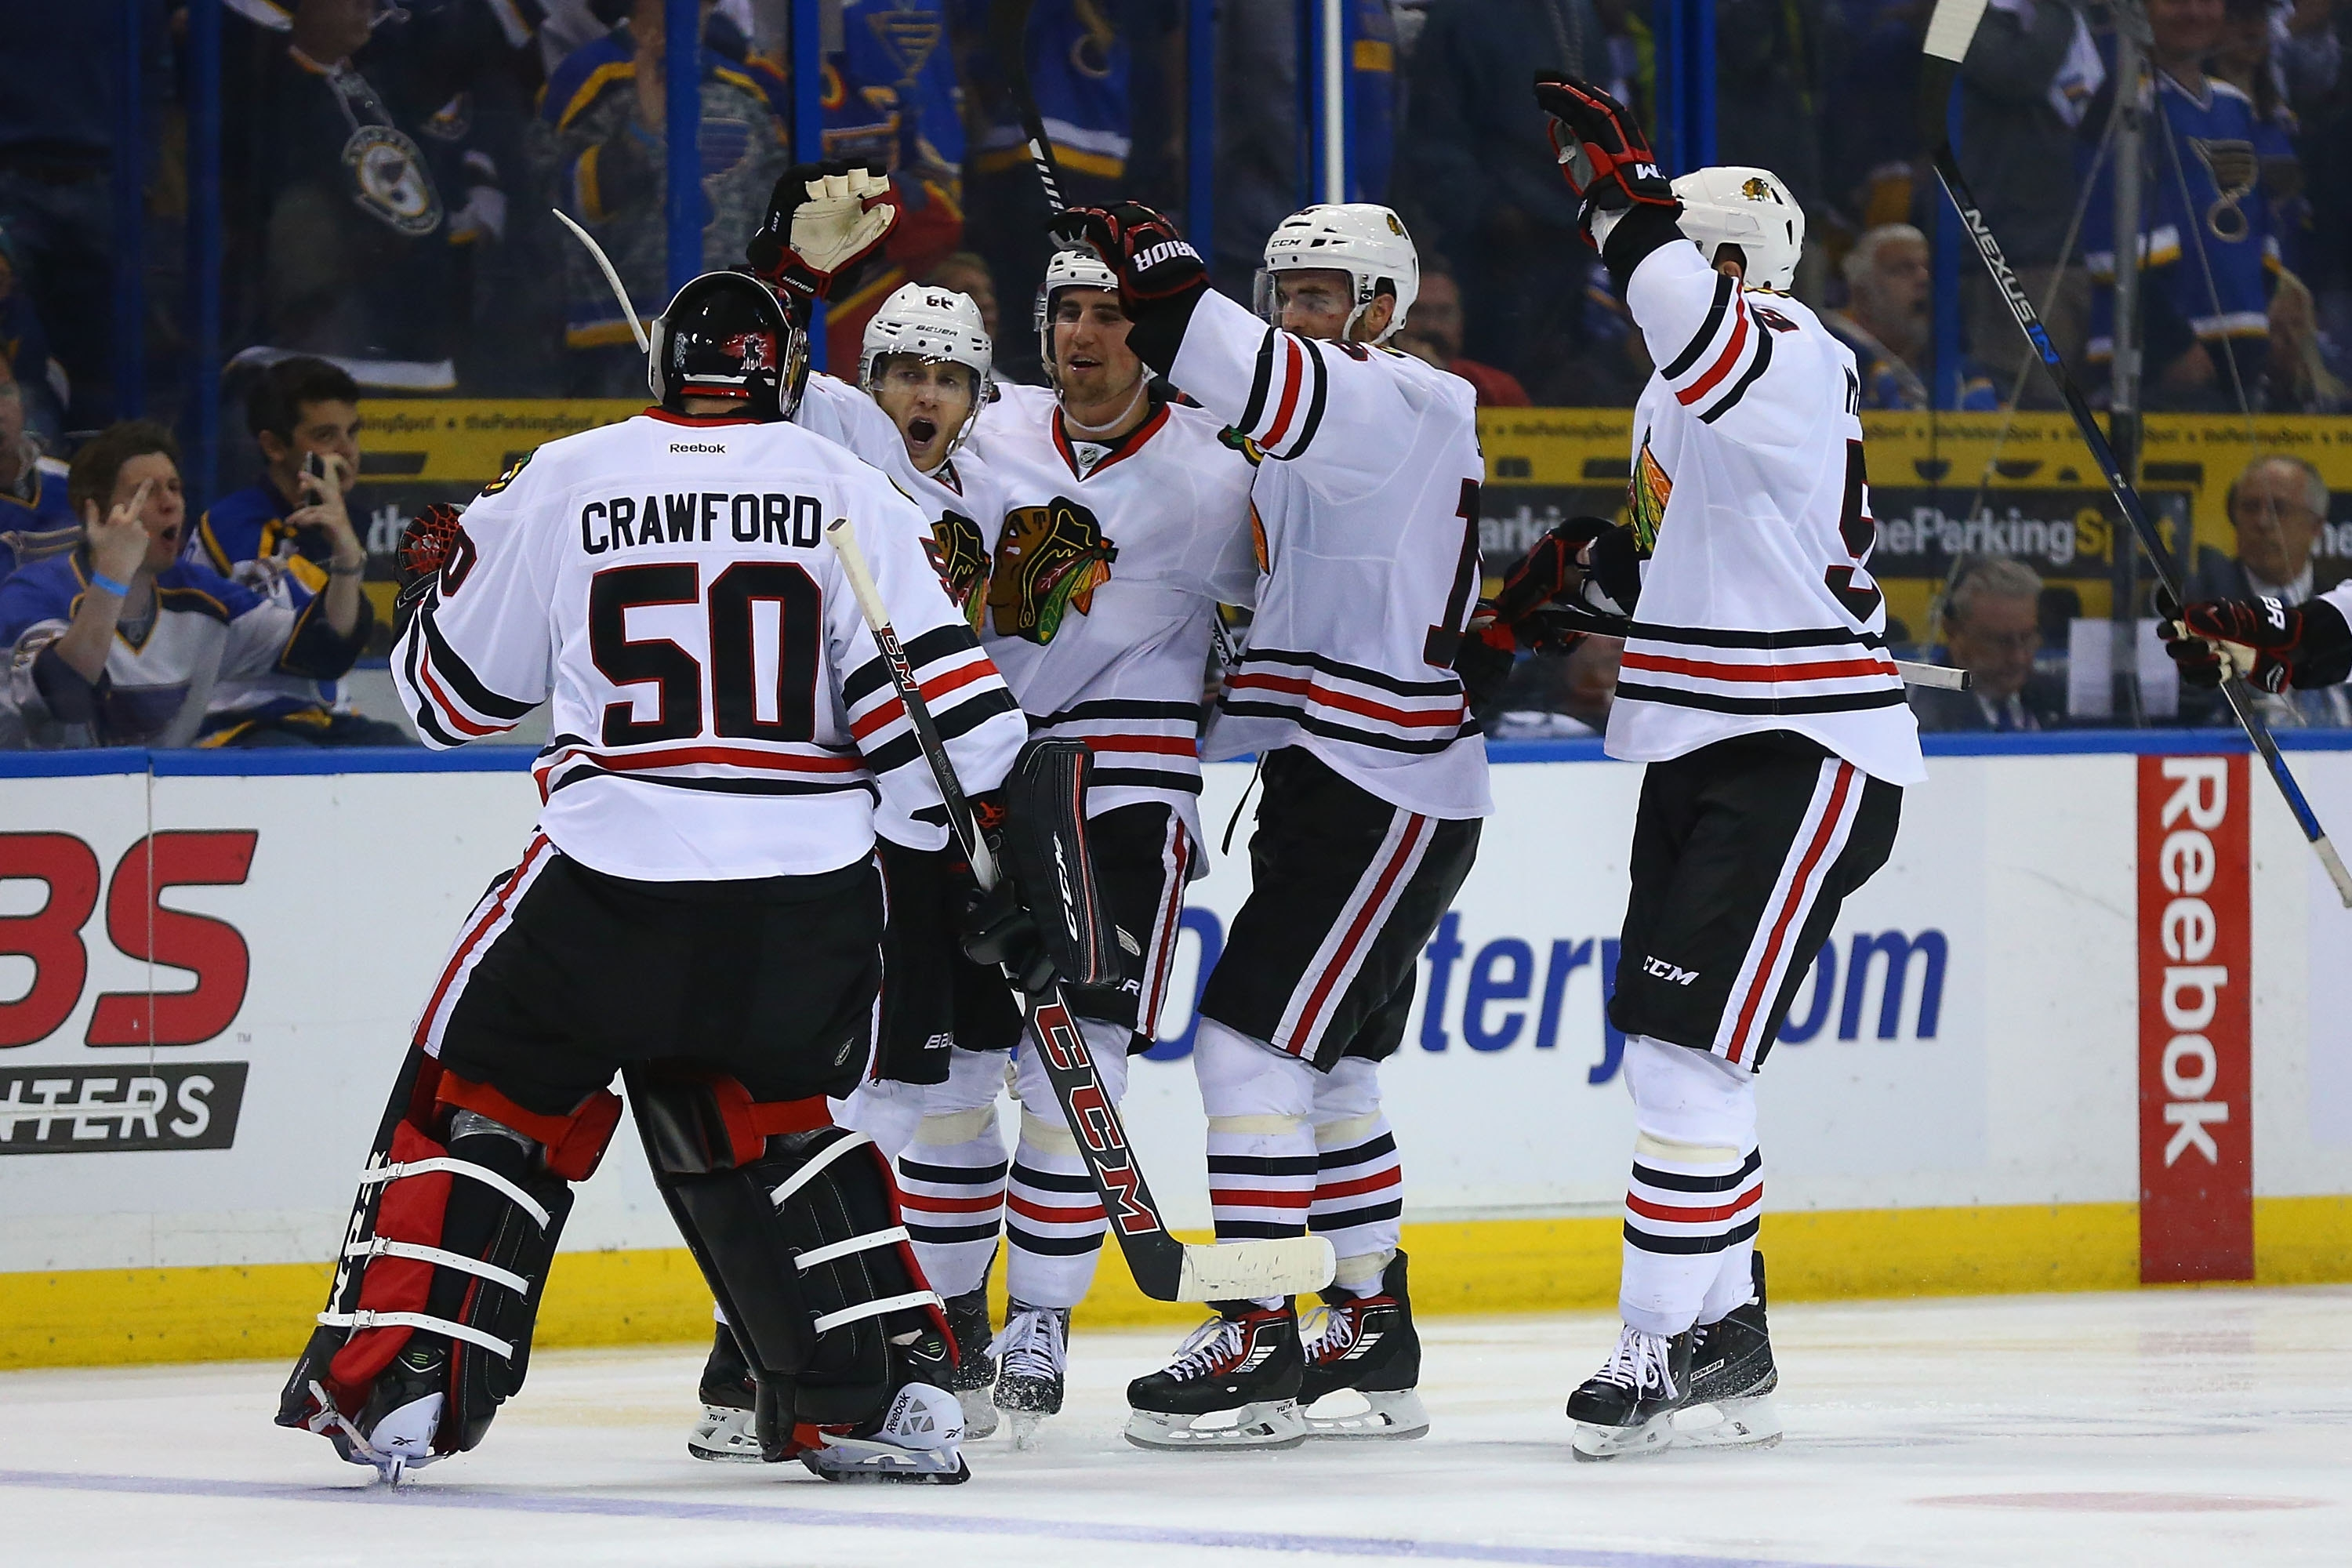 Patrick Kane's first goal of this year's playoffs came at an opportune time, in the second overtime of Game 5 against St. Louis.